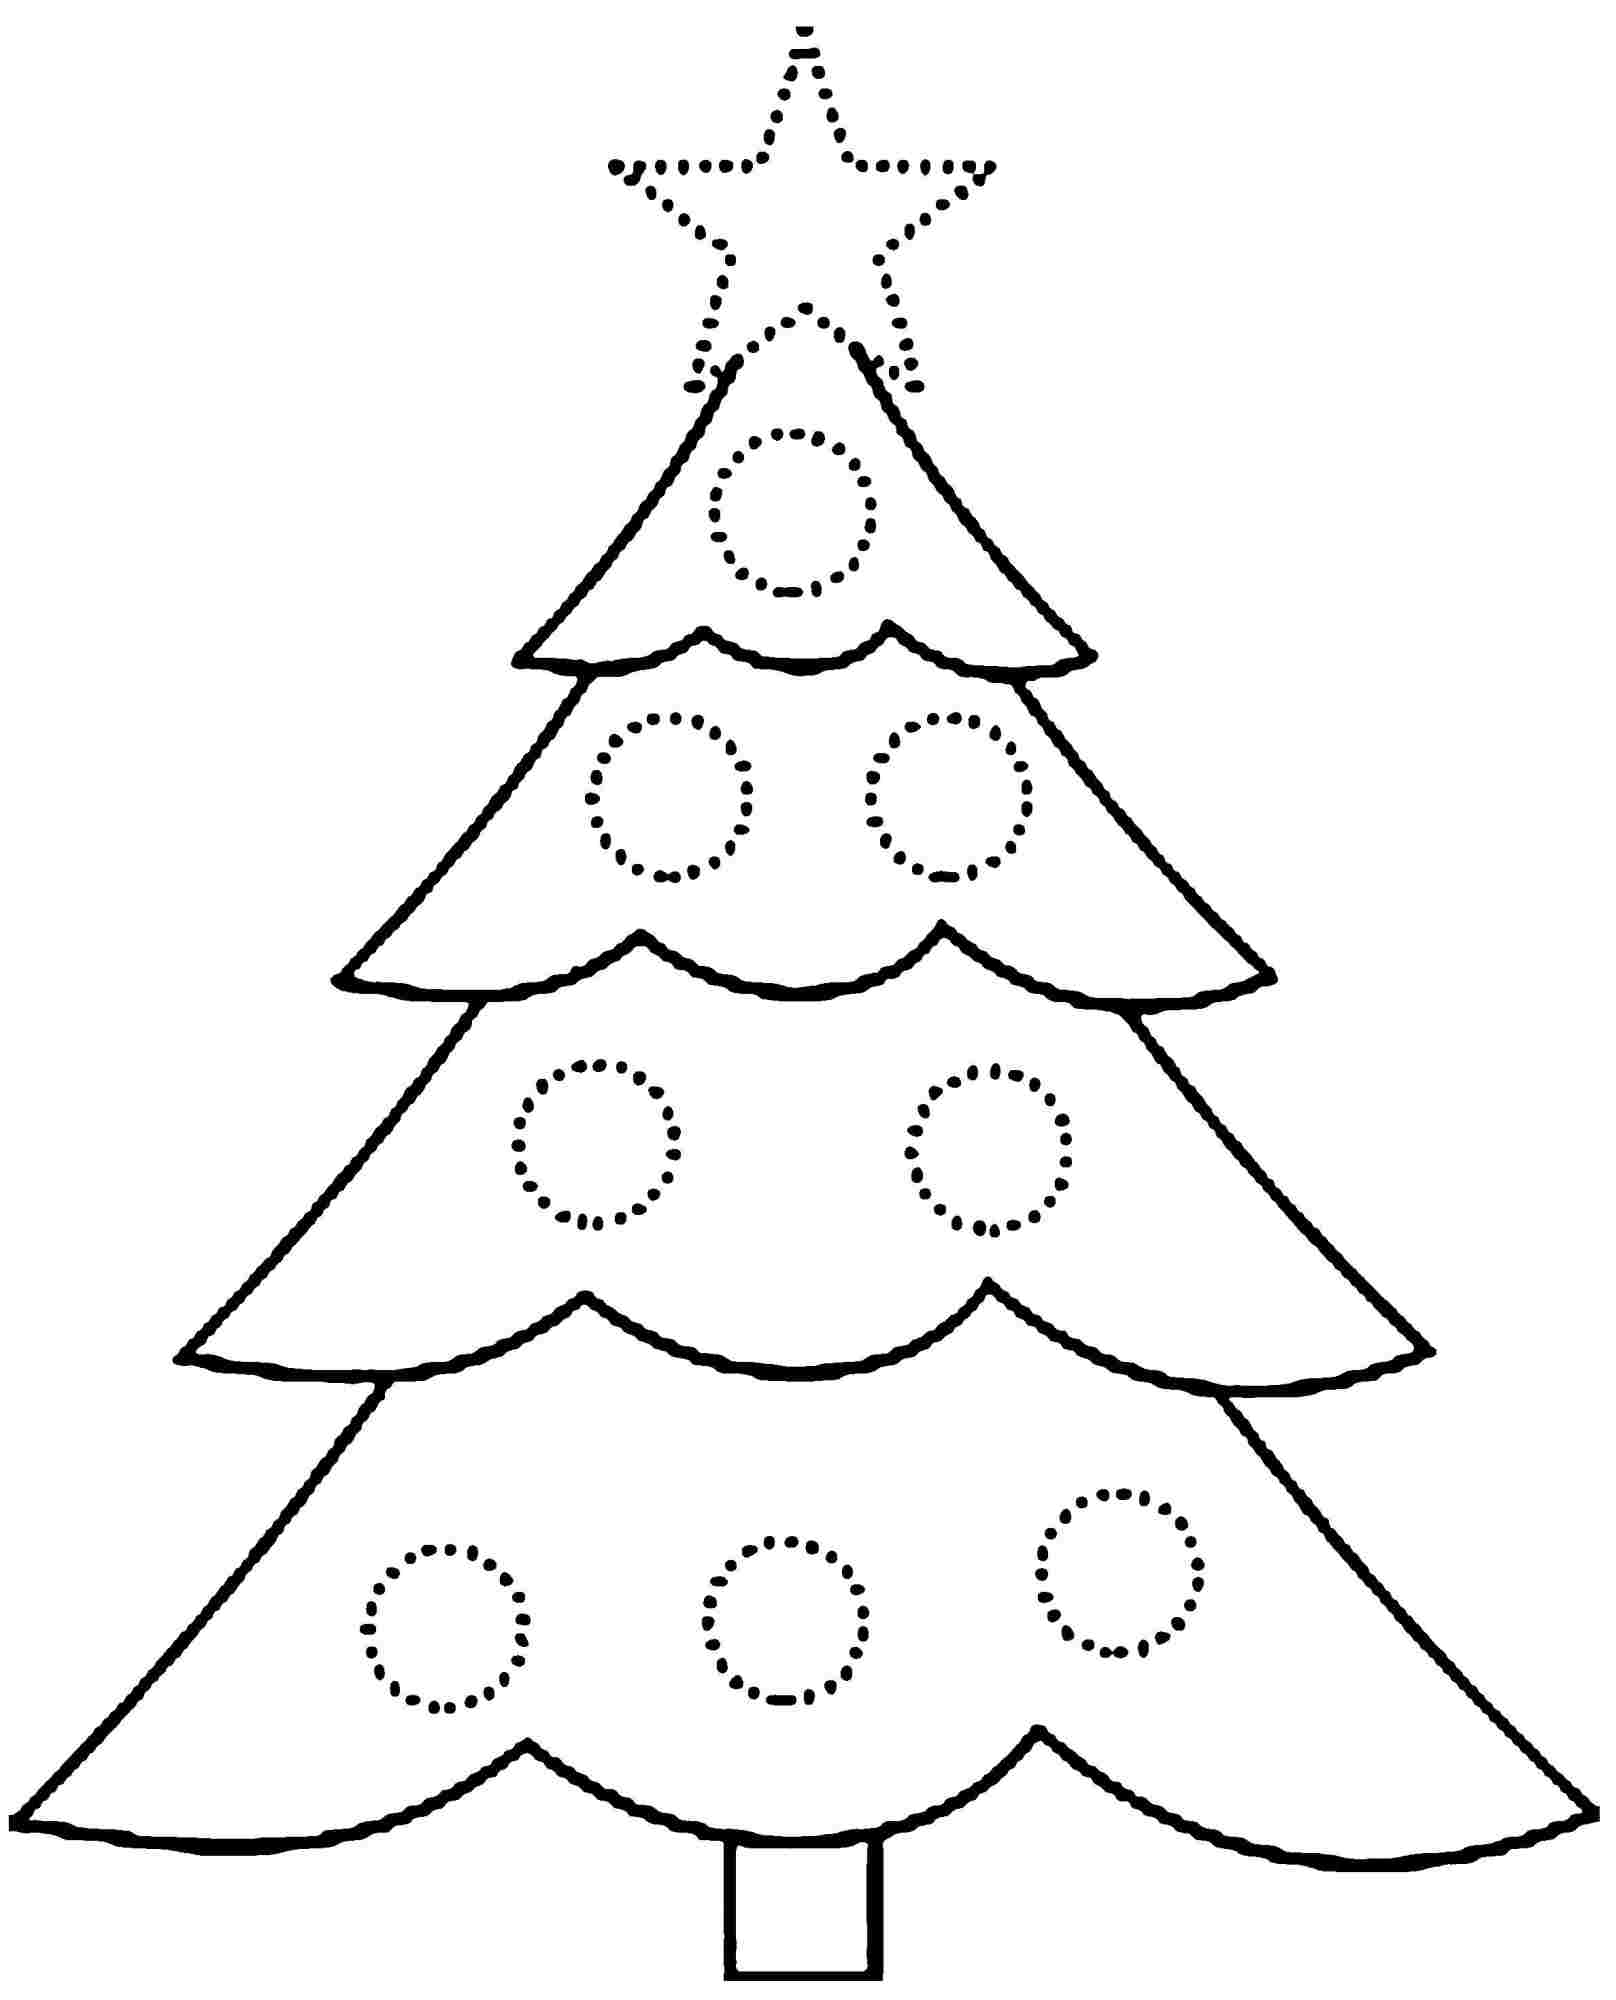 Free Printable Christmas Tree Coloring Page - Coloring Home